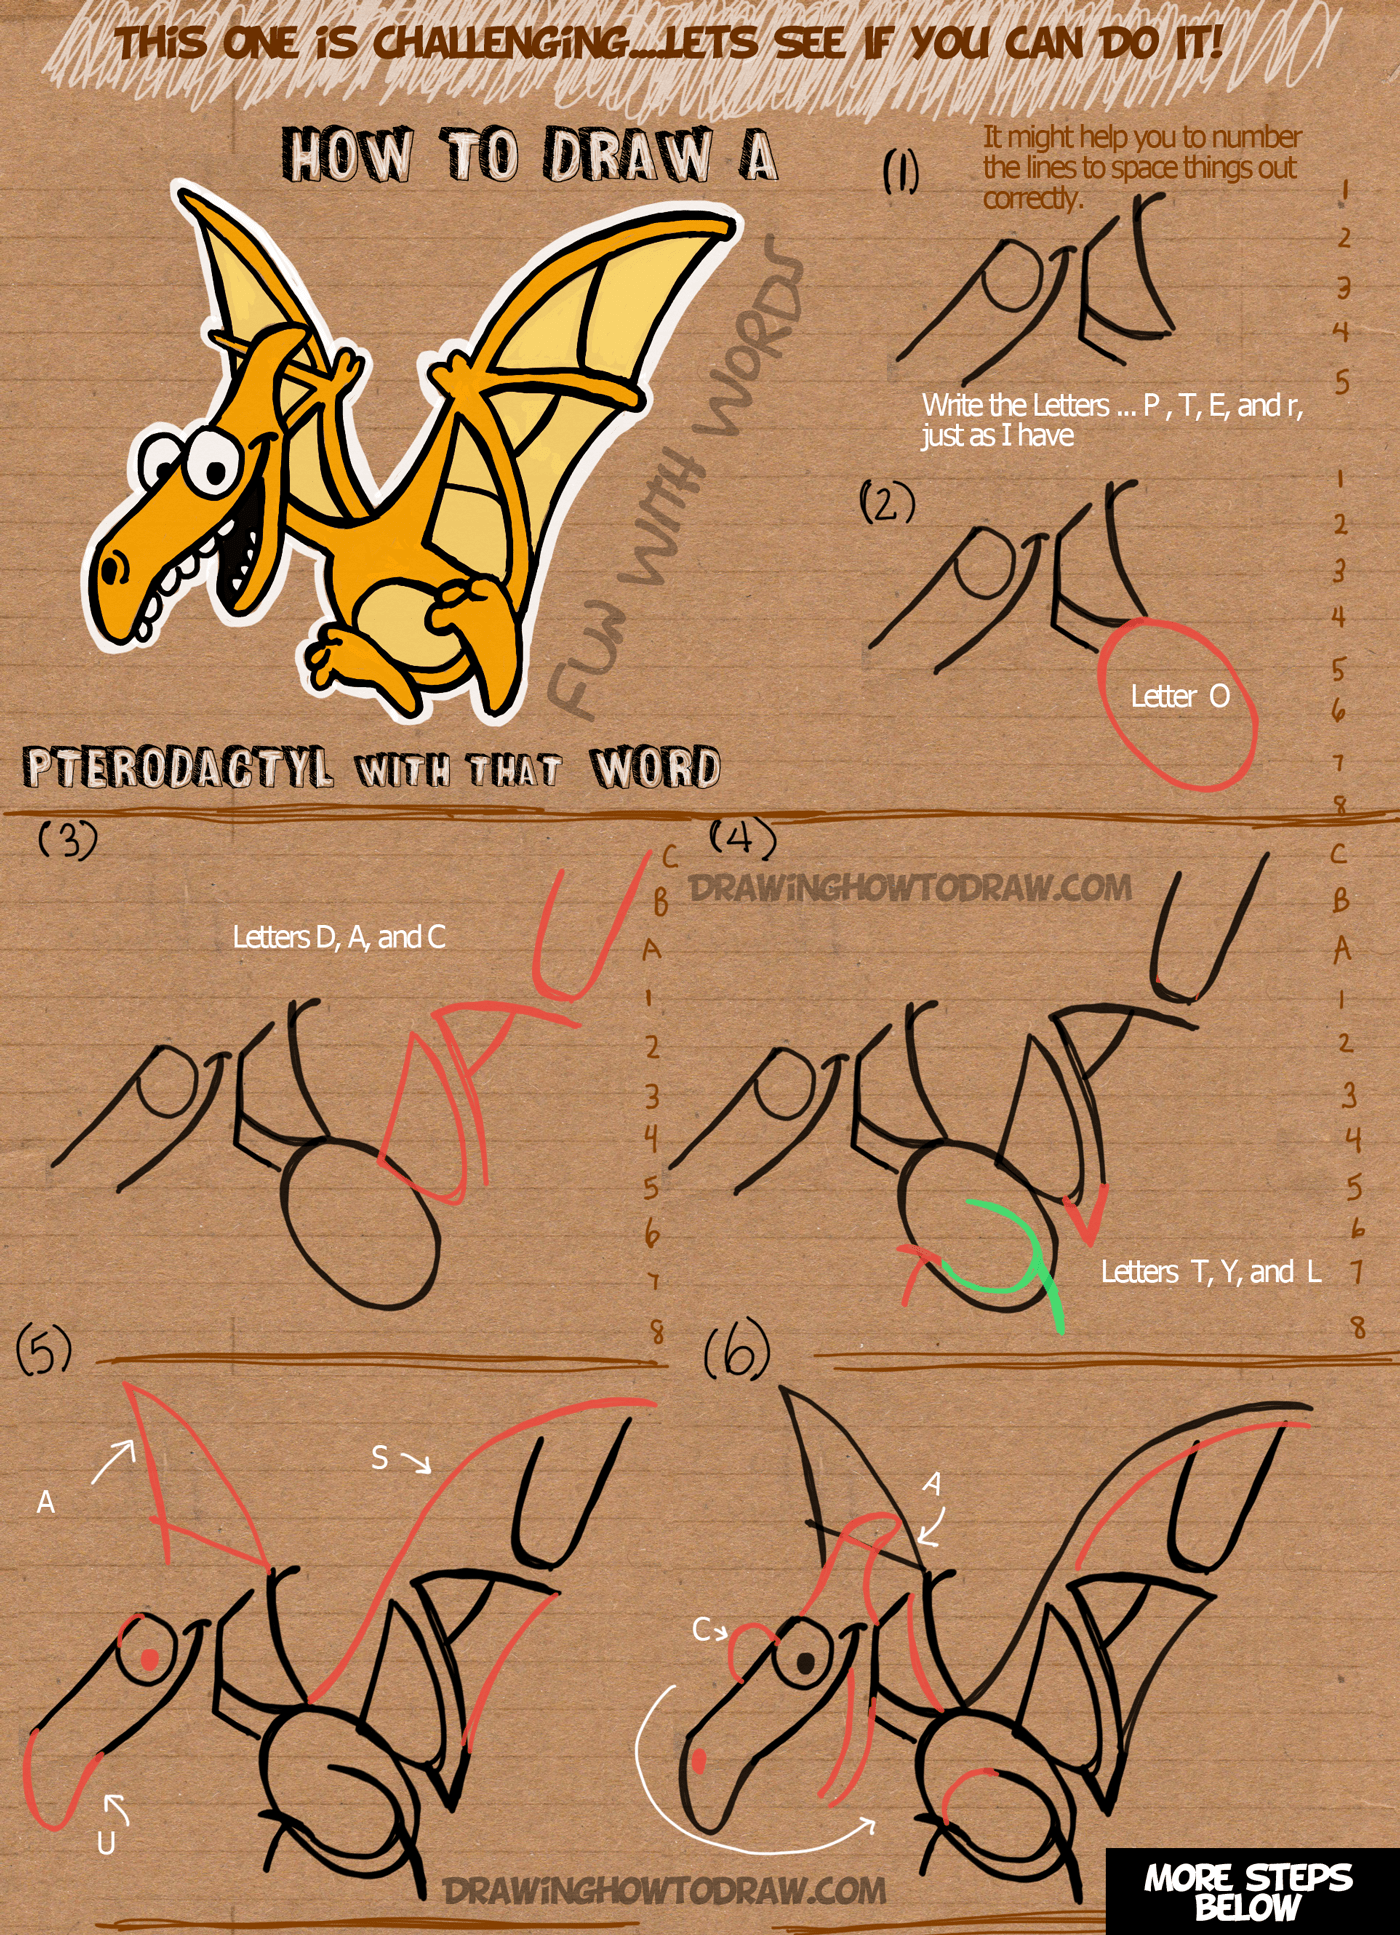 how to make a diagram in word ge gas dryer wiring draw cartoon pterodactyls using the step by